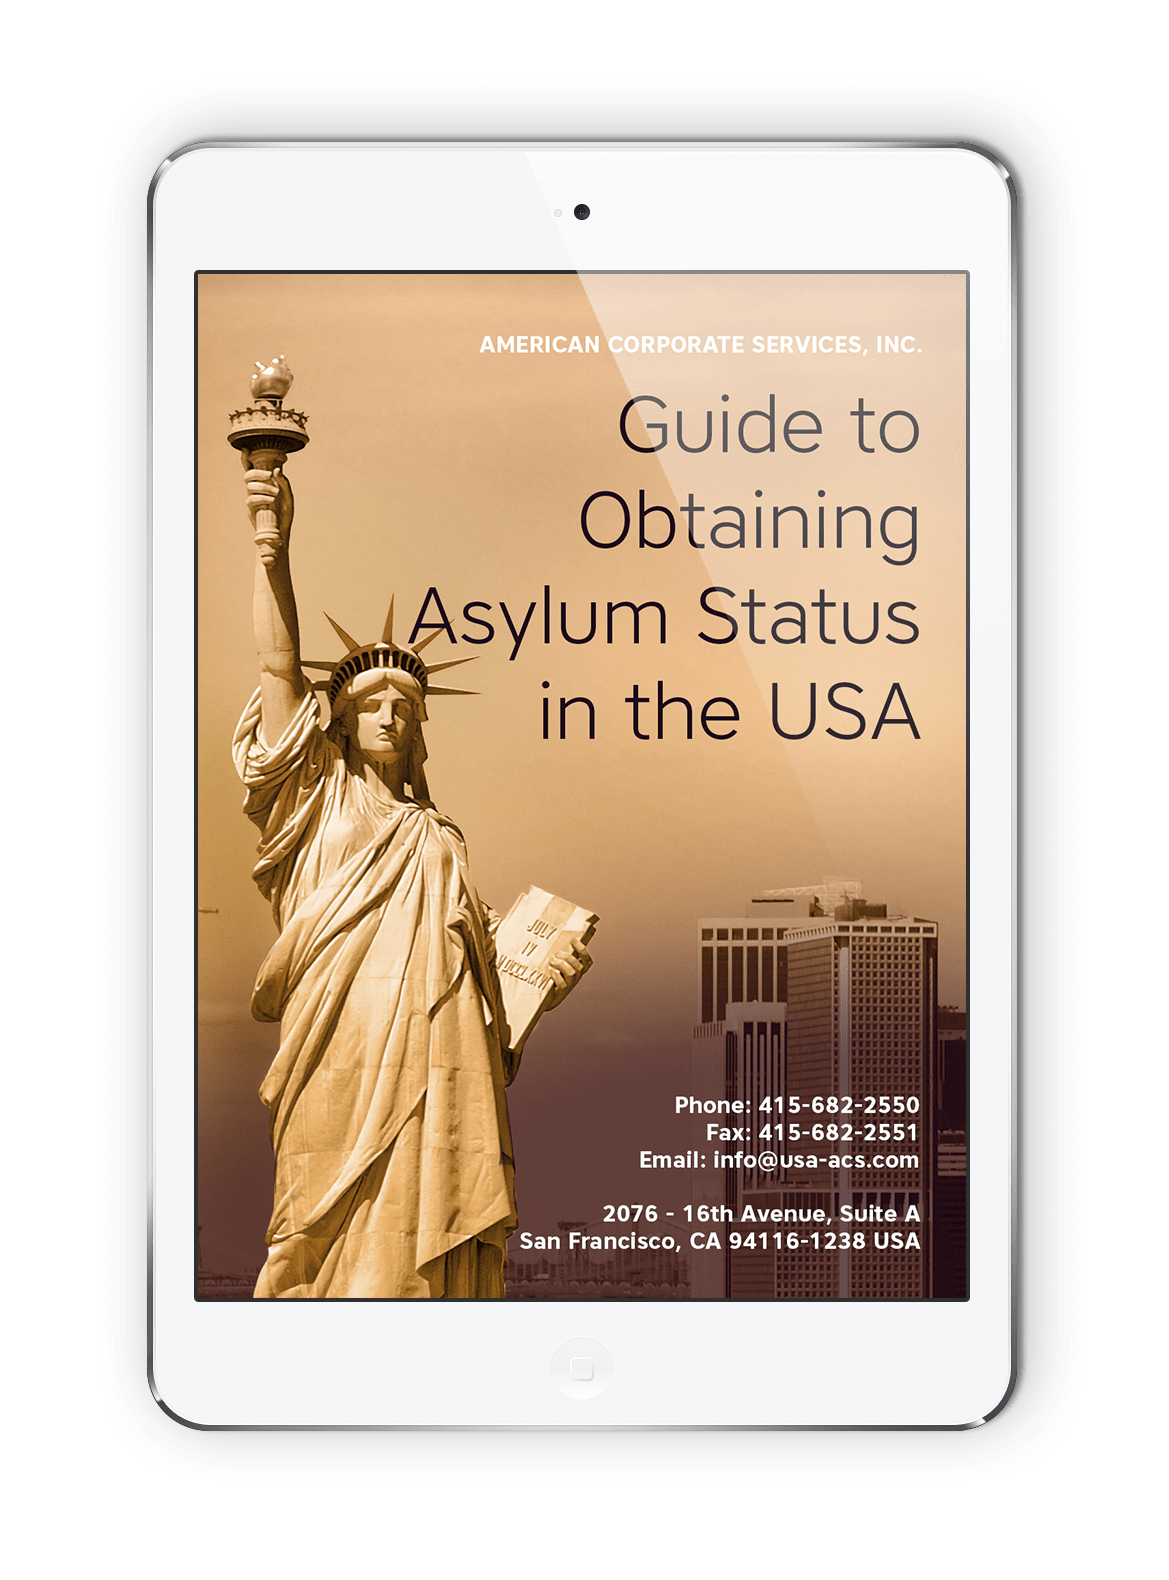 Guide to Obtaining Asylum Status in the USA